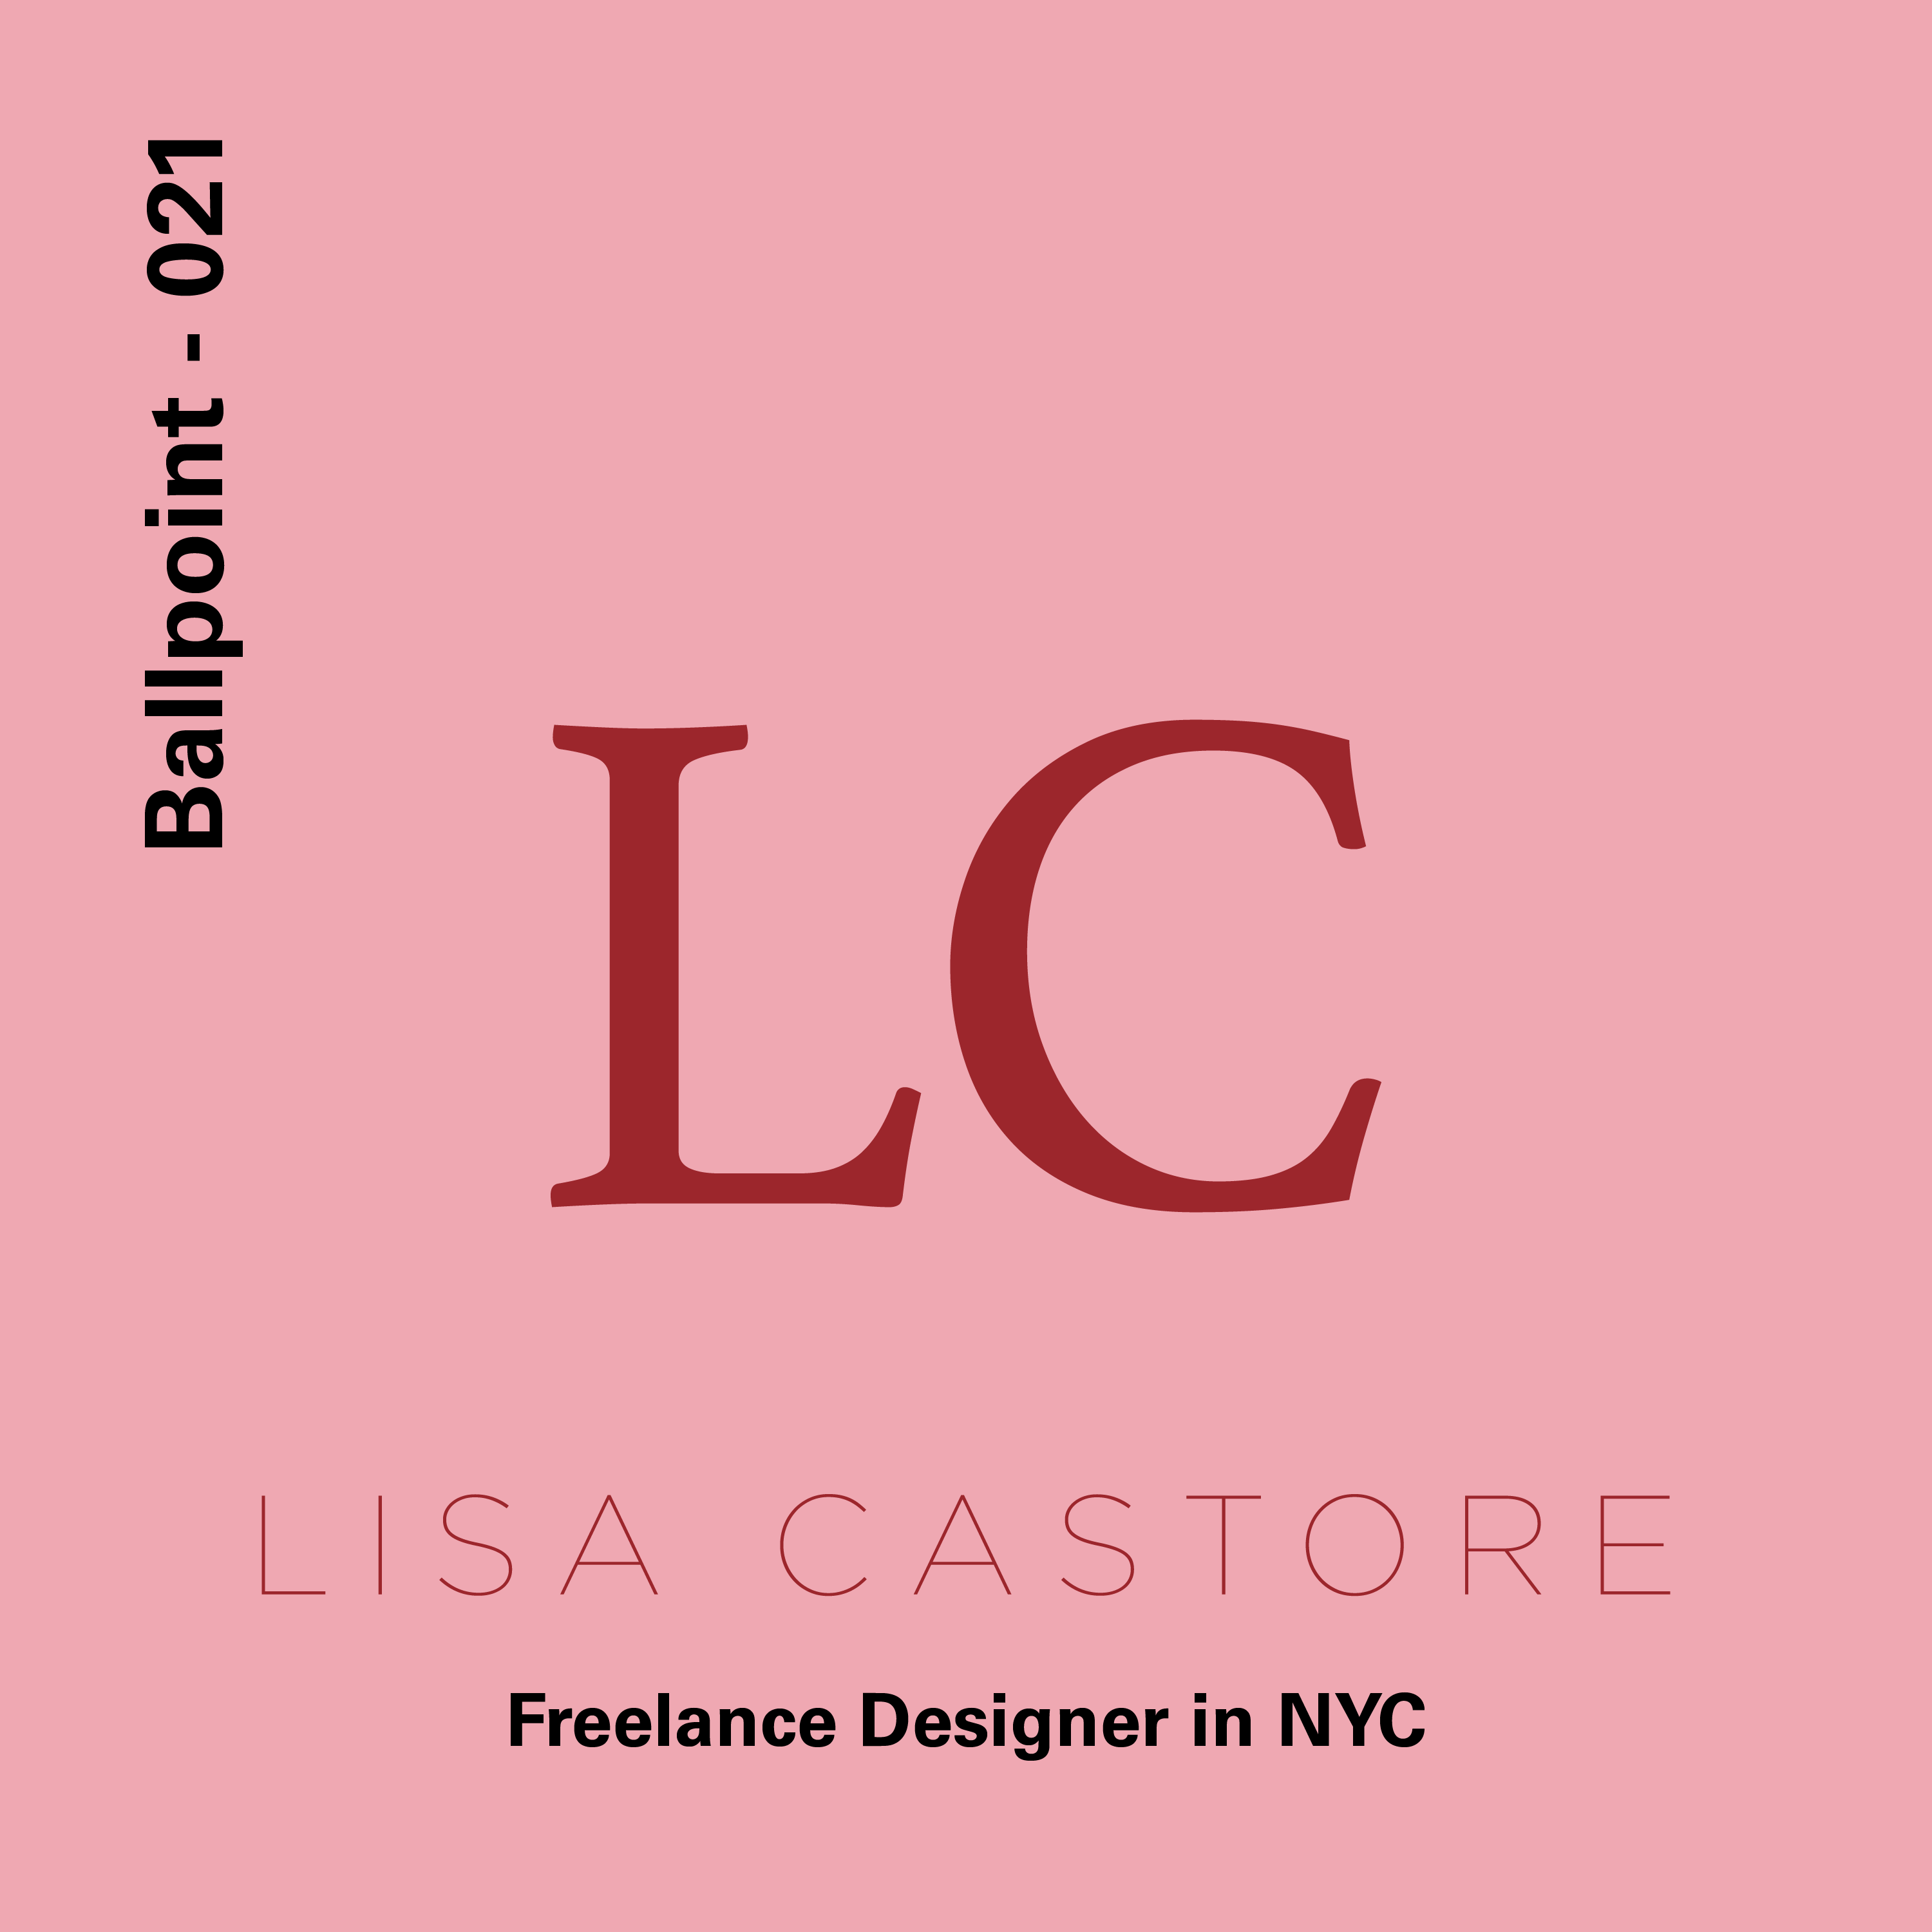 021 - Lisa Castore, Freelance Designer in RI